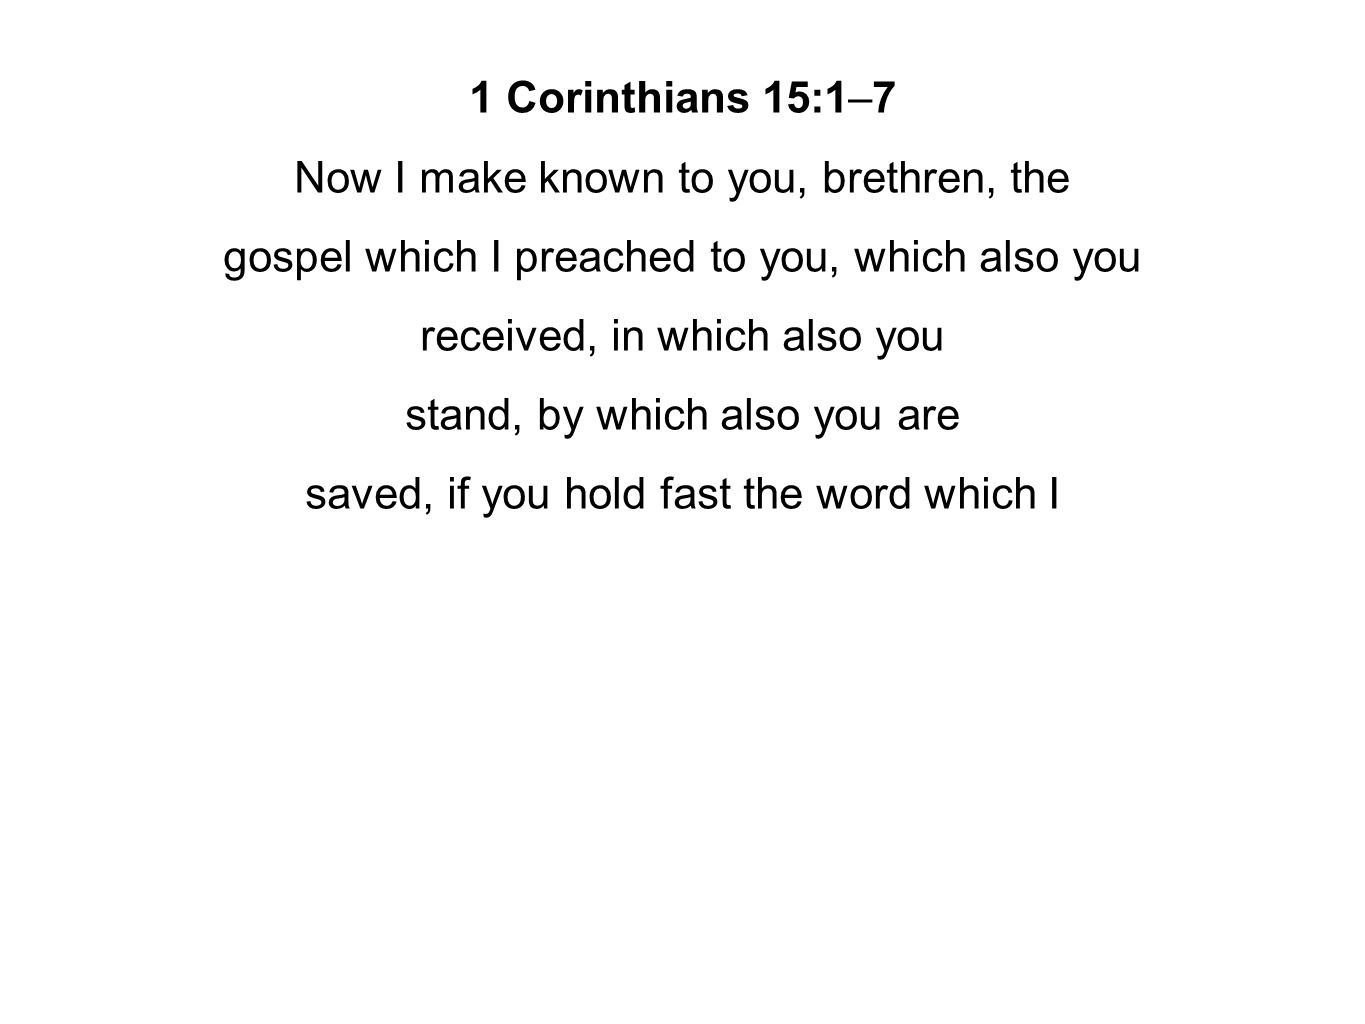 1 Corinthians 15:1–7 Now I make known to you, brethren, the gospel which I preached to you, which also you received, in which also you stand, by which also you are saved, if you hold fast the word which I